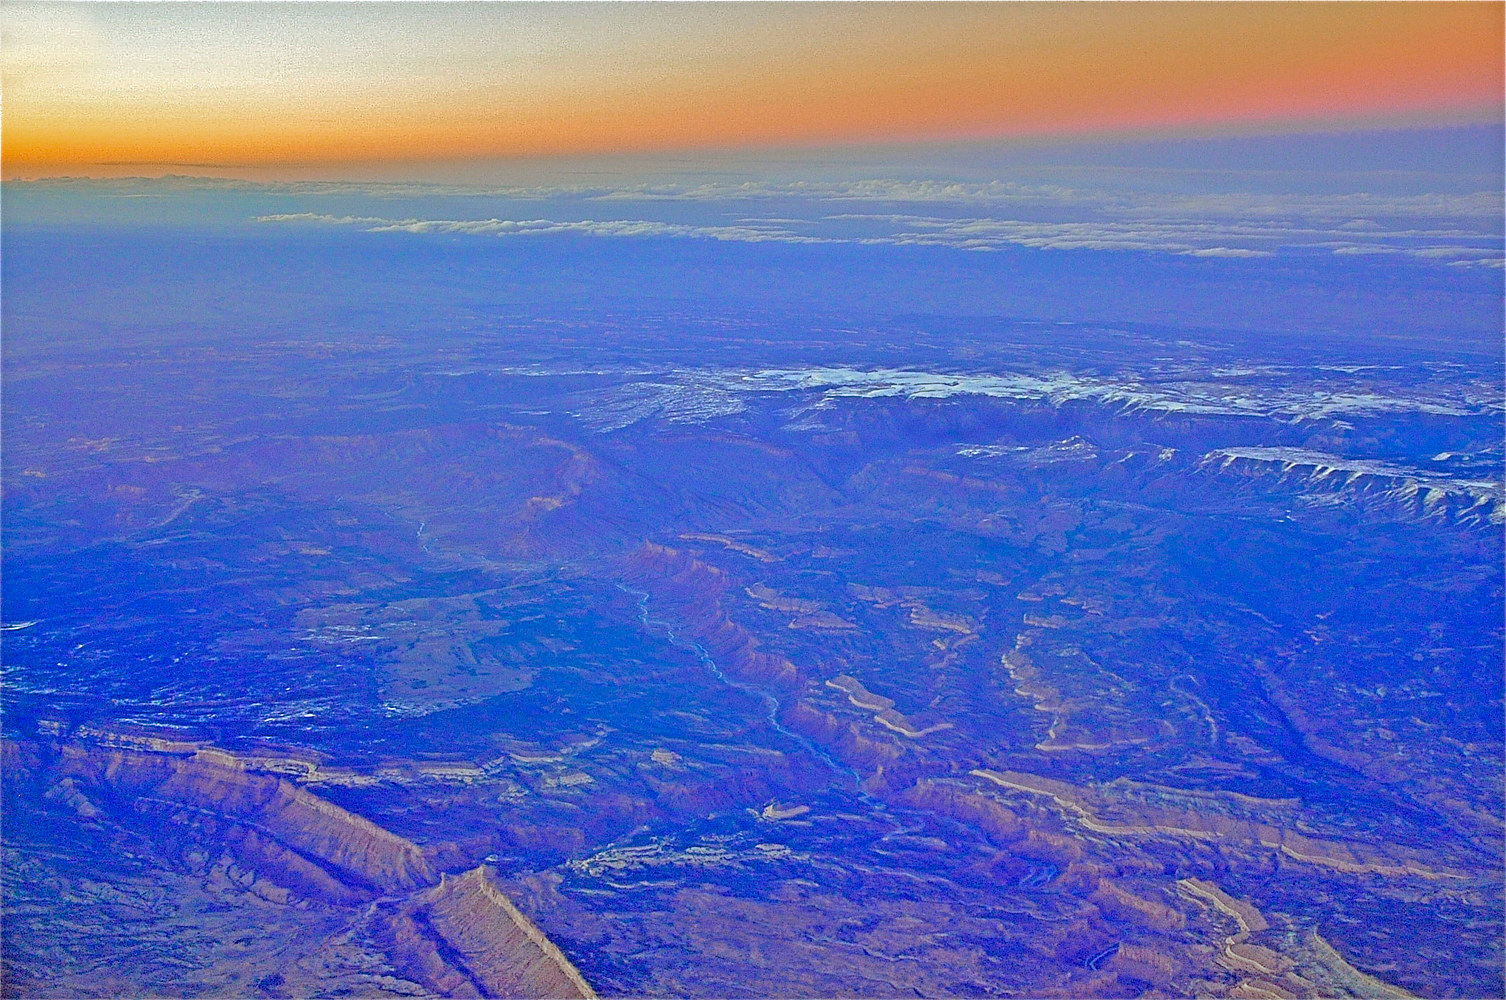 GRAND CANYON AERIAL by Joeann Edmonds-Matthew